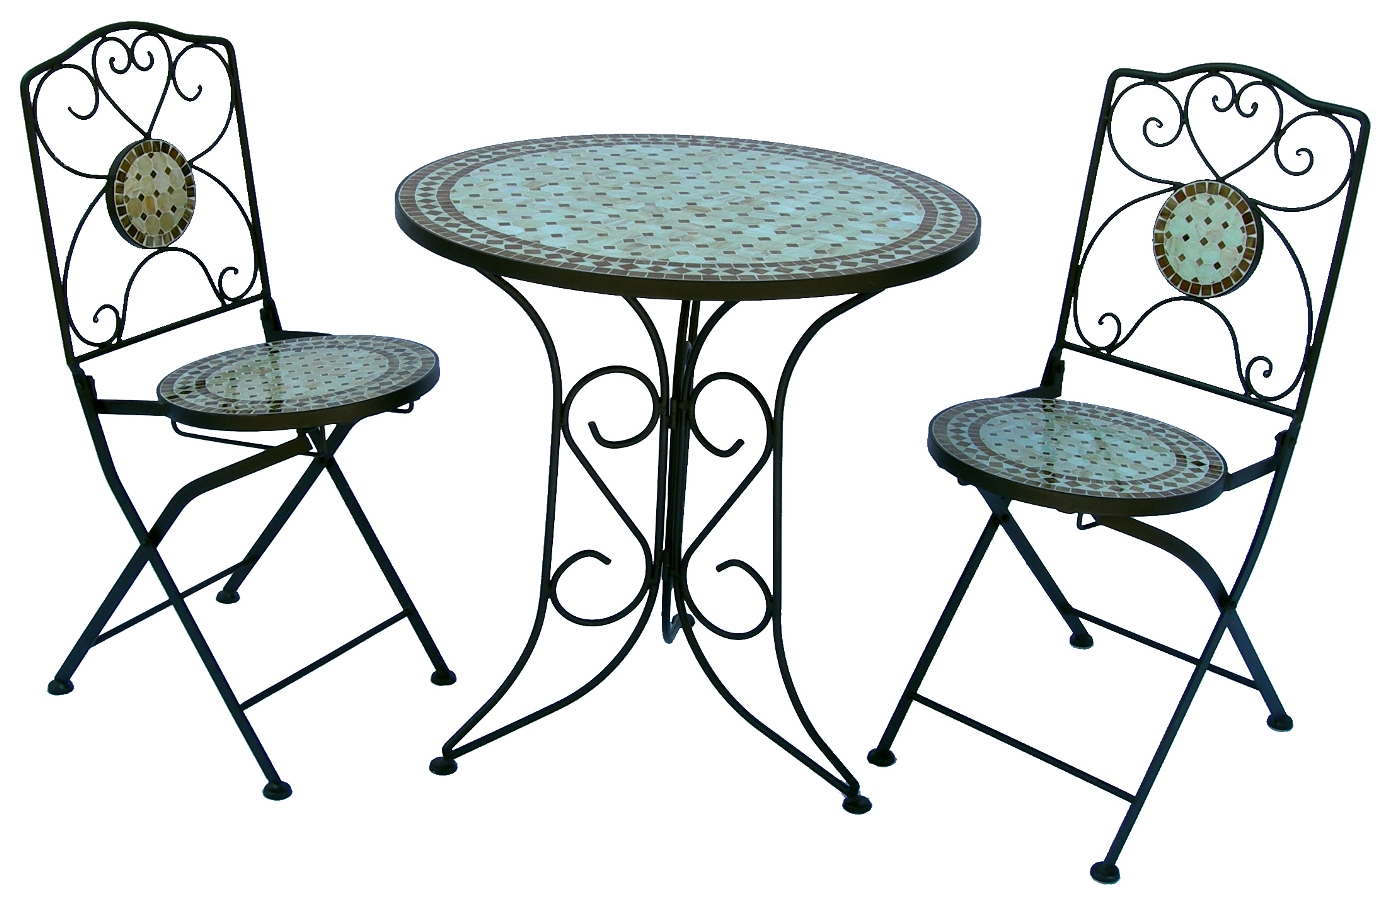 decorating mosaic accent table indoor small round tiles craft mirror and chairs outdoor stone full size unique rustic end tables black garden coffee set bar stools bunnings height